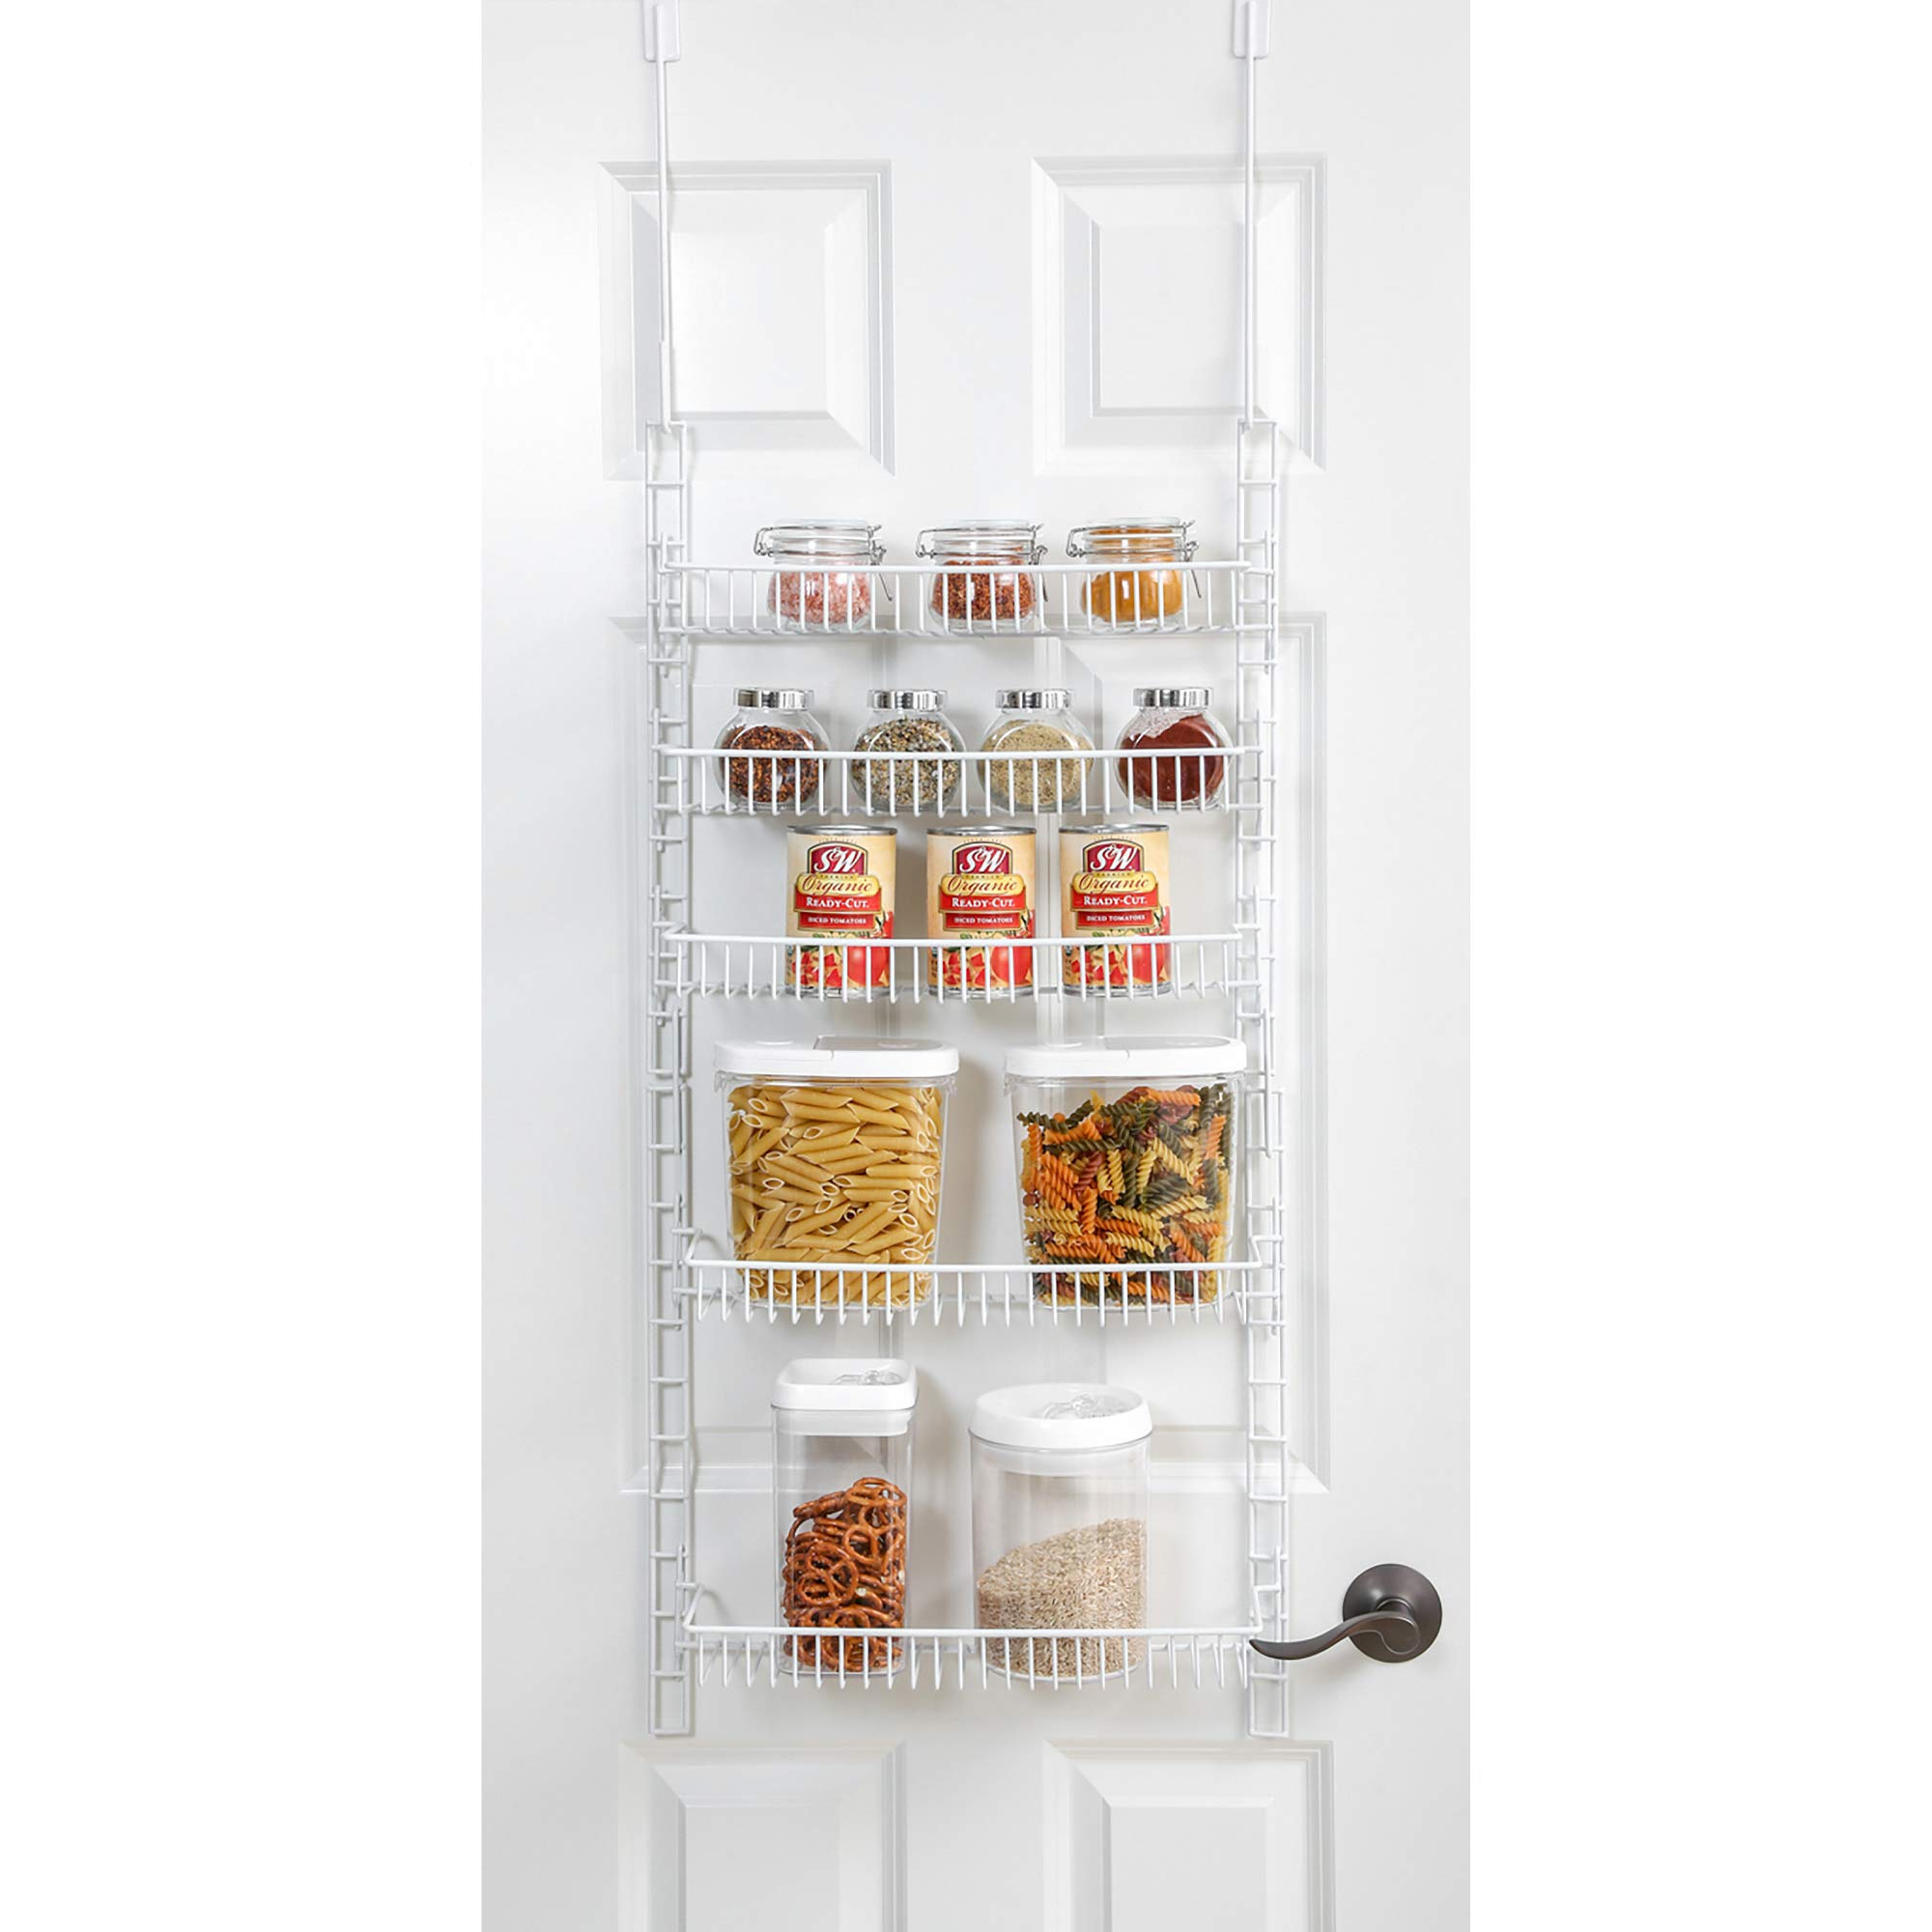 Smart Design Over The Door Adjustable Pantry Organizer Rack w/ 5 Adjustable Shelves - Small 51 Inch - Steel Construction w/ Hooks & Screws - for Cans, Food, Misc. Item - Kitchen [White] by Smart Design